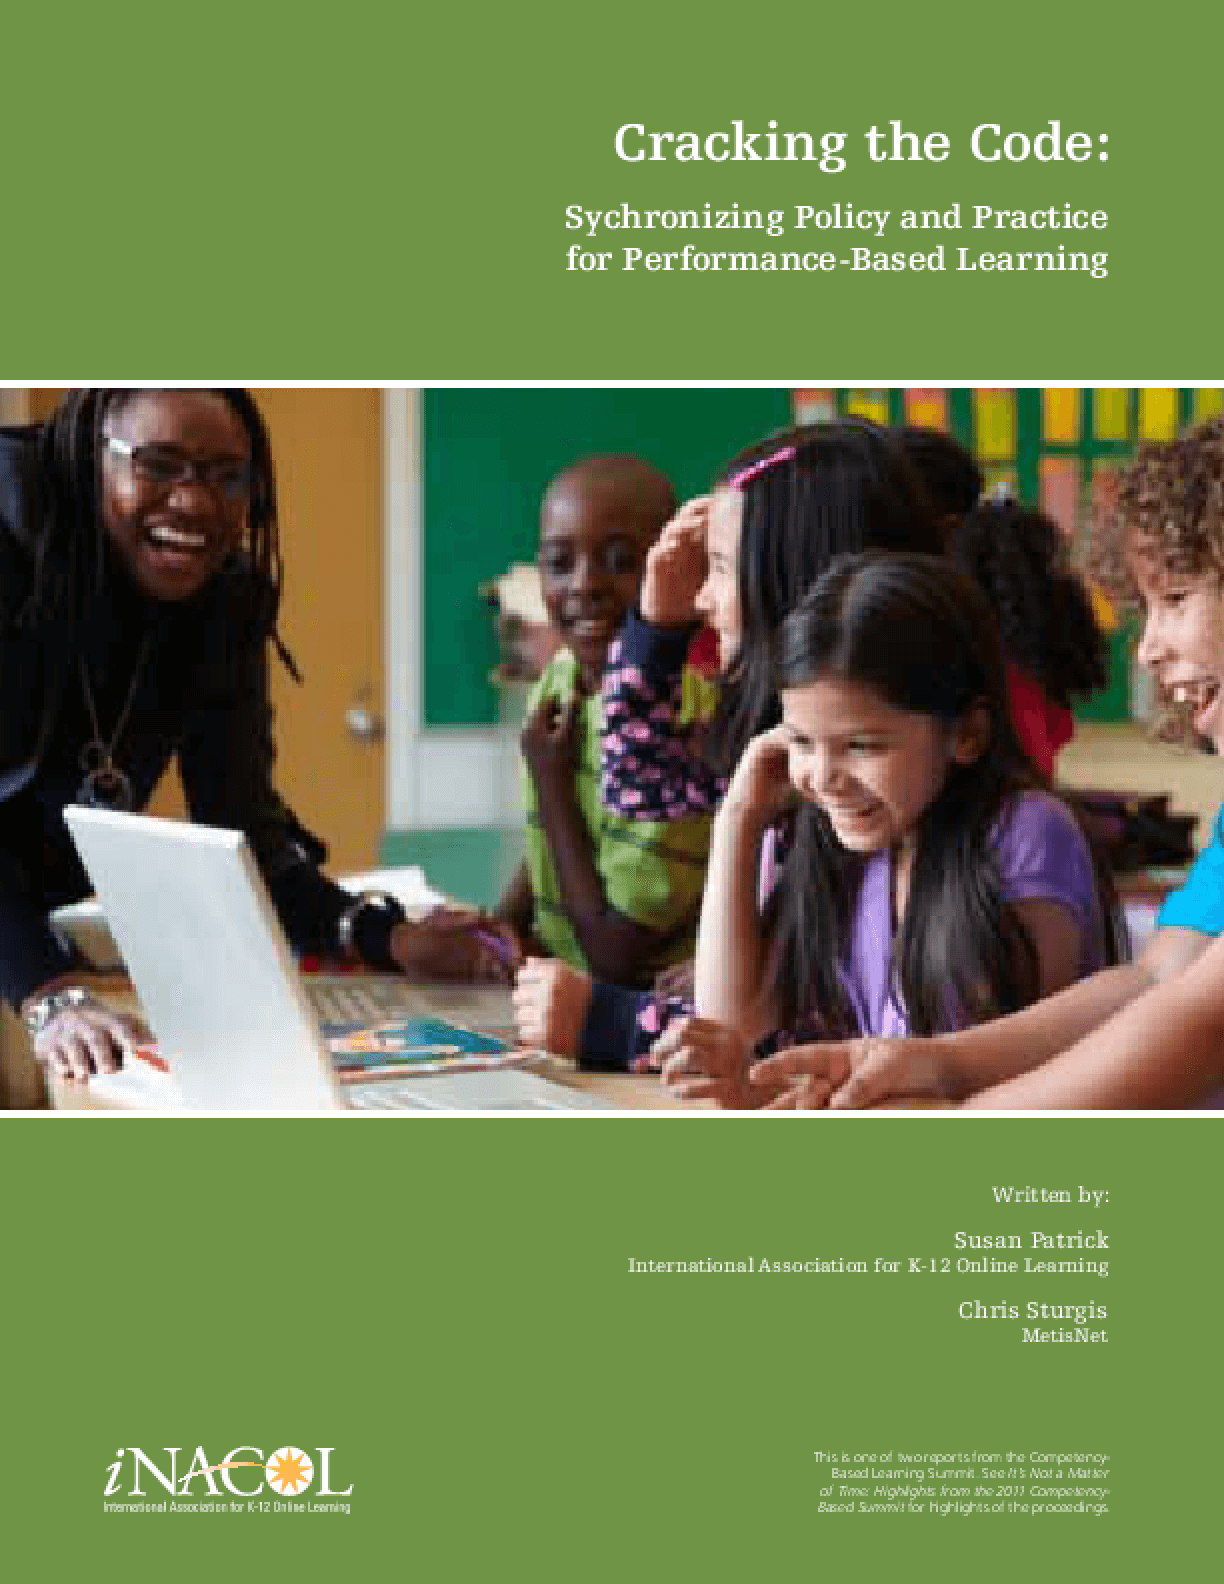 Cracking the Code: Synchronizing Policy and Practice for Performance-Based Learning